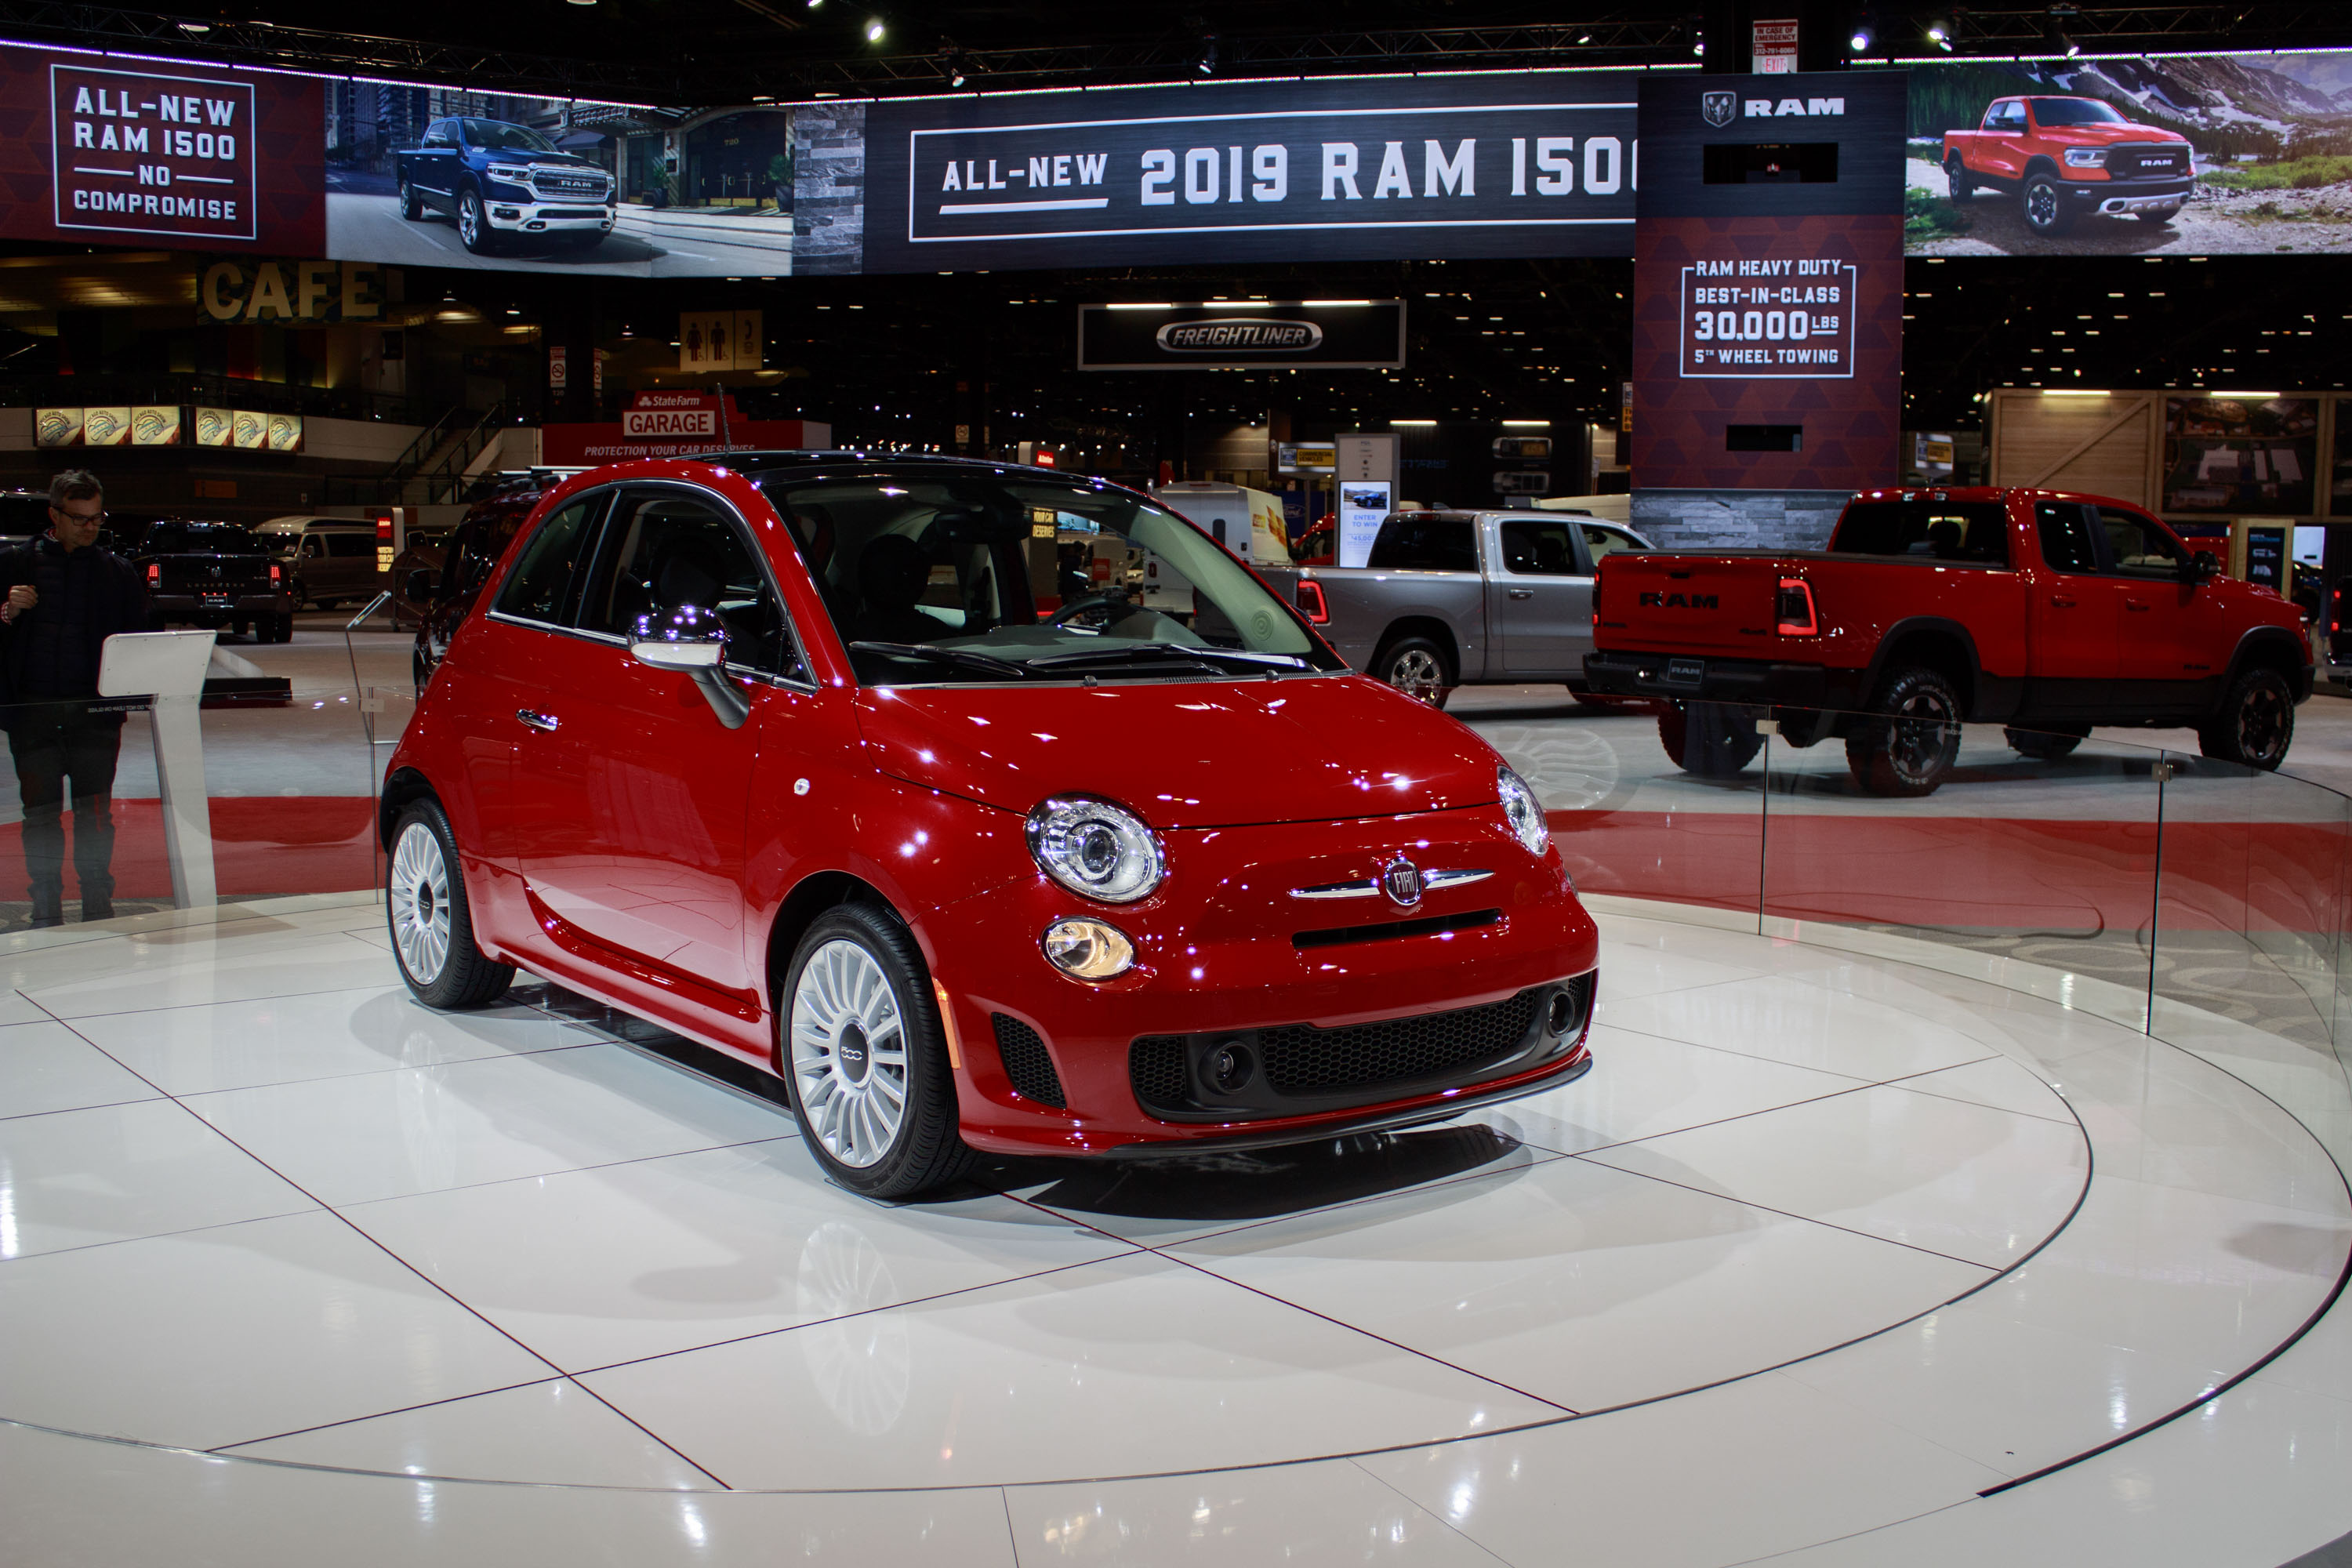 lease youwheel the earn home for a month leasing fiat car or